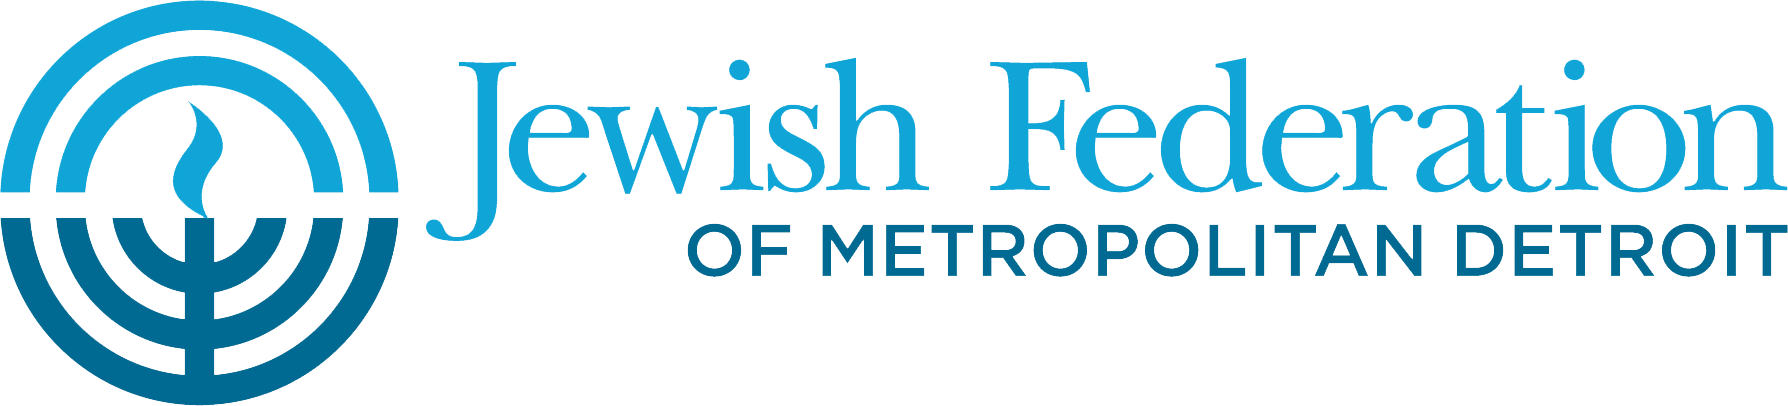 Jewish Federation of Metro Detroit